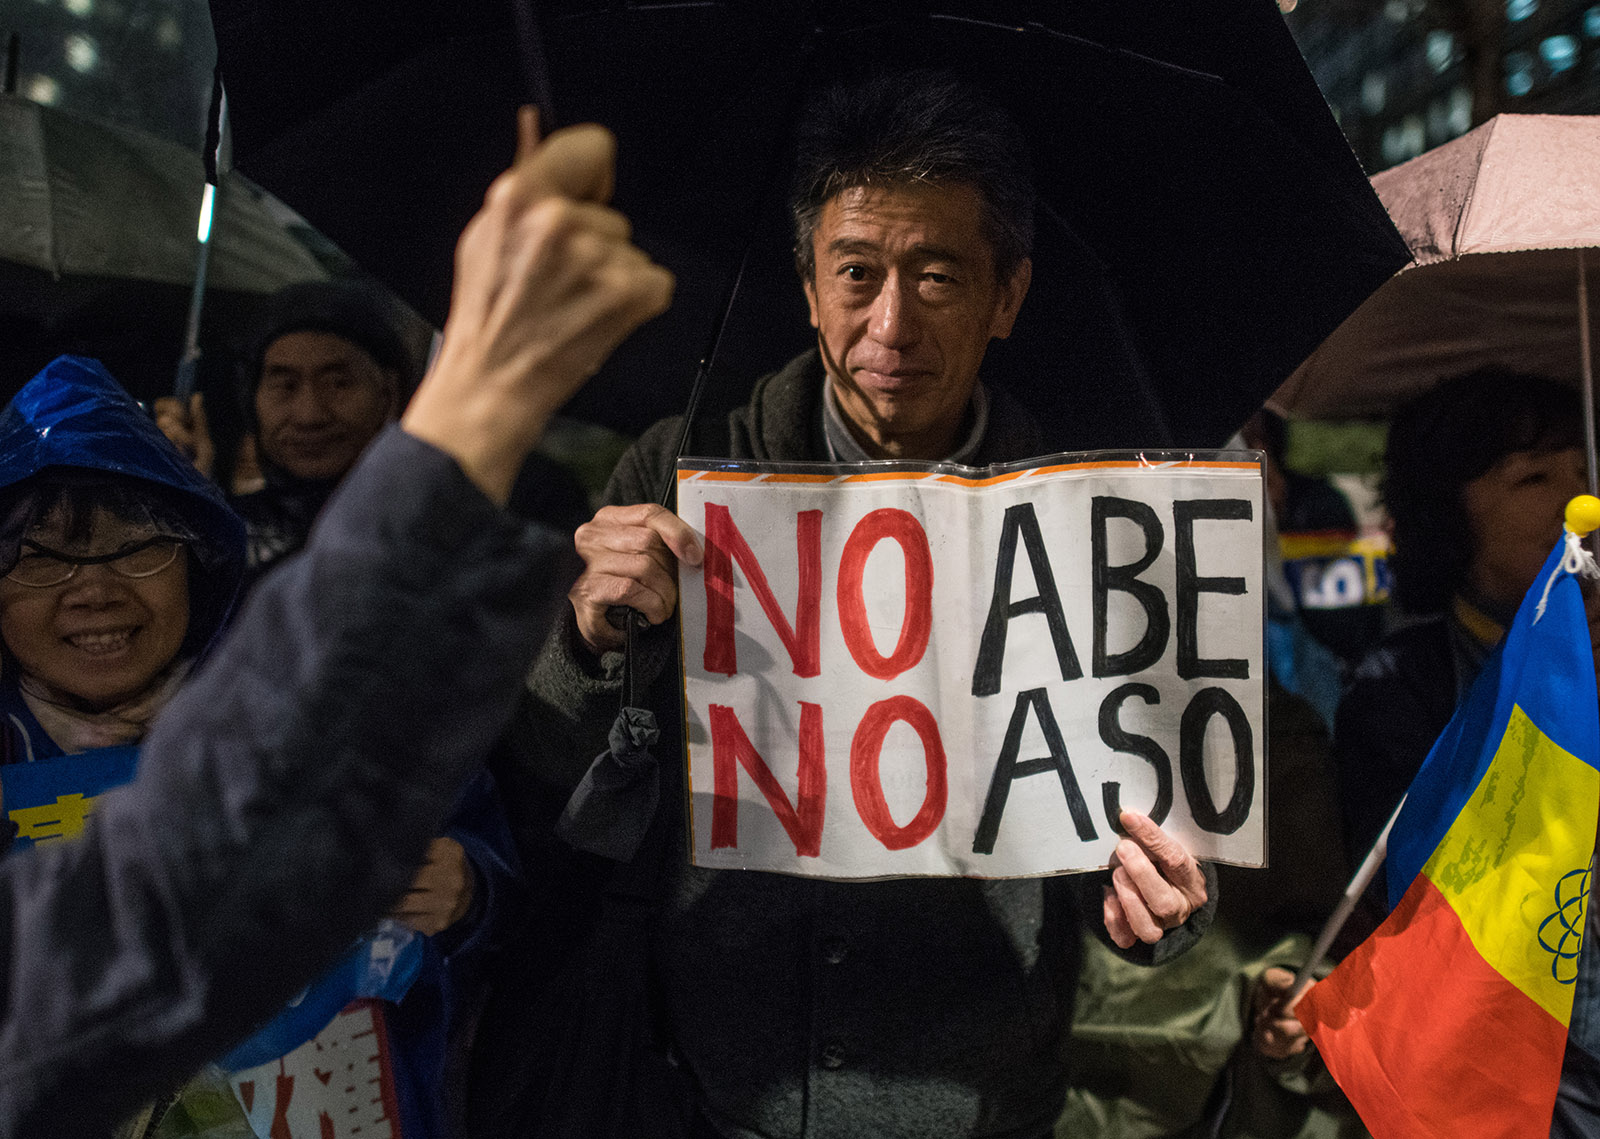 Protesters calling for the resignation of Prime Minister Shinzo Abe and his finance minister, Taro Aso, over a land sale scandal, Tokyo, Japan, March 16, 2018